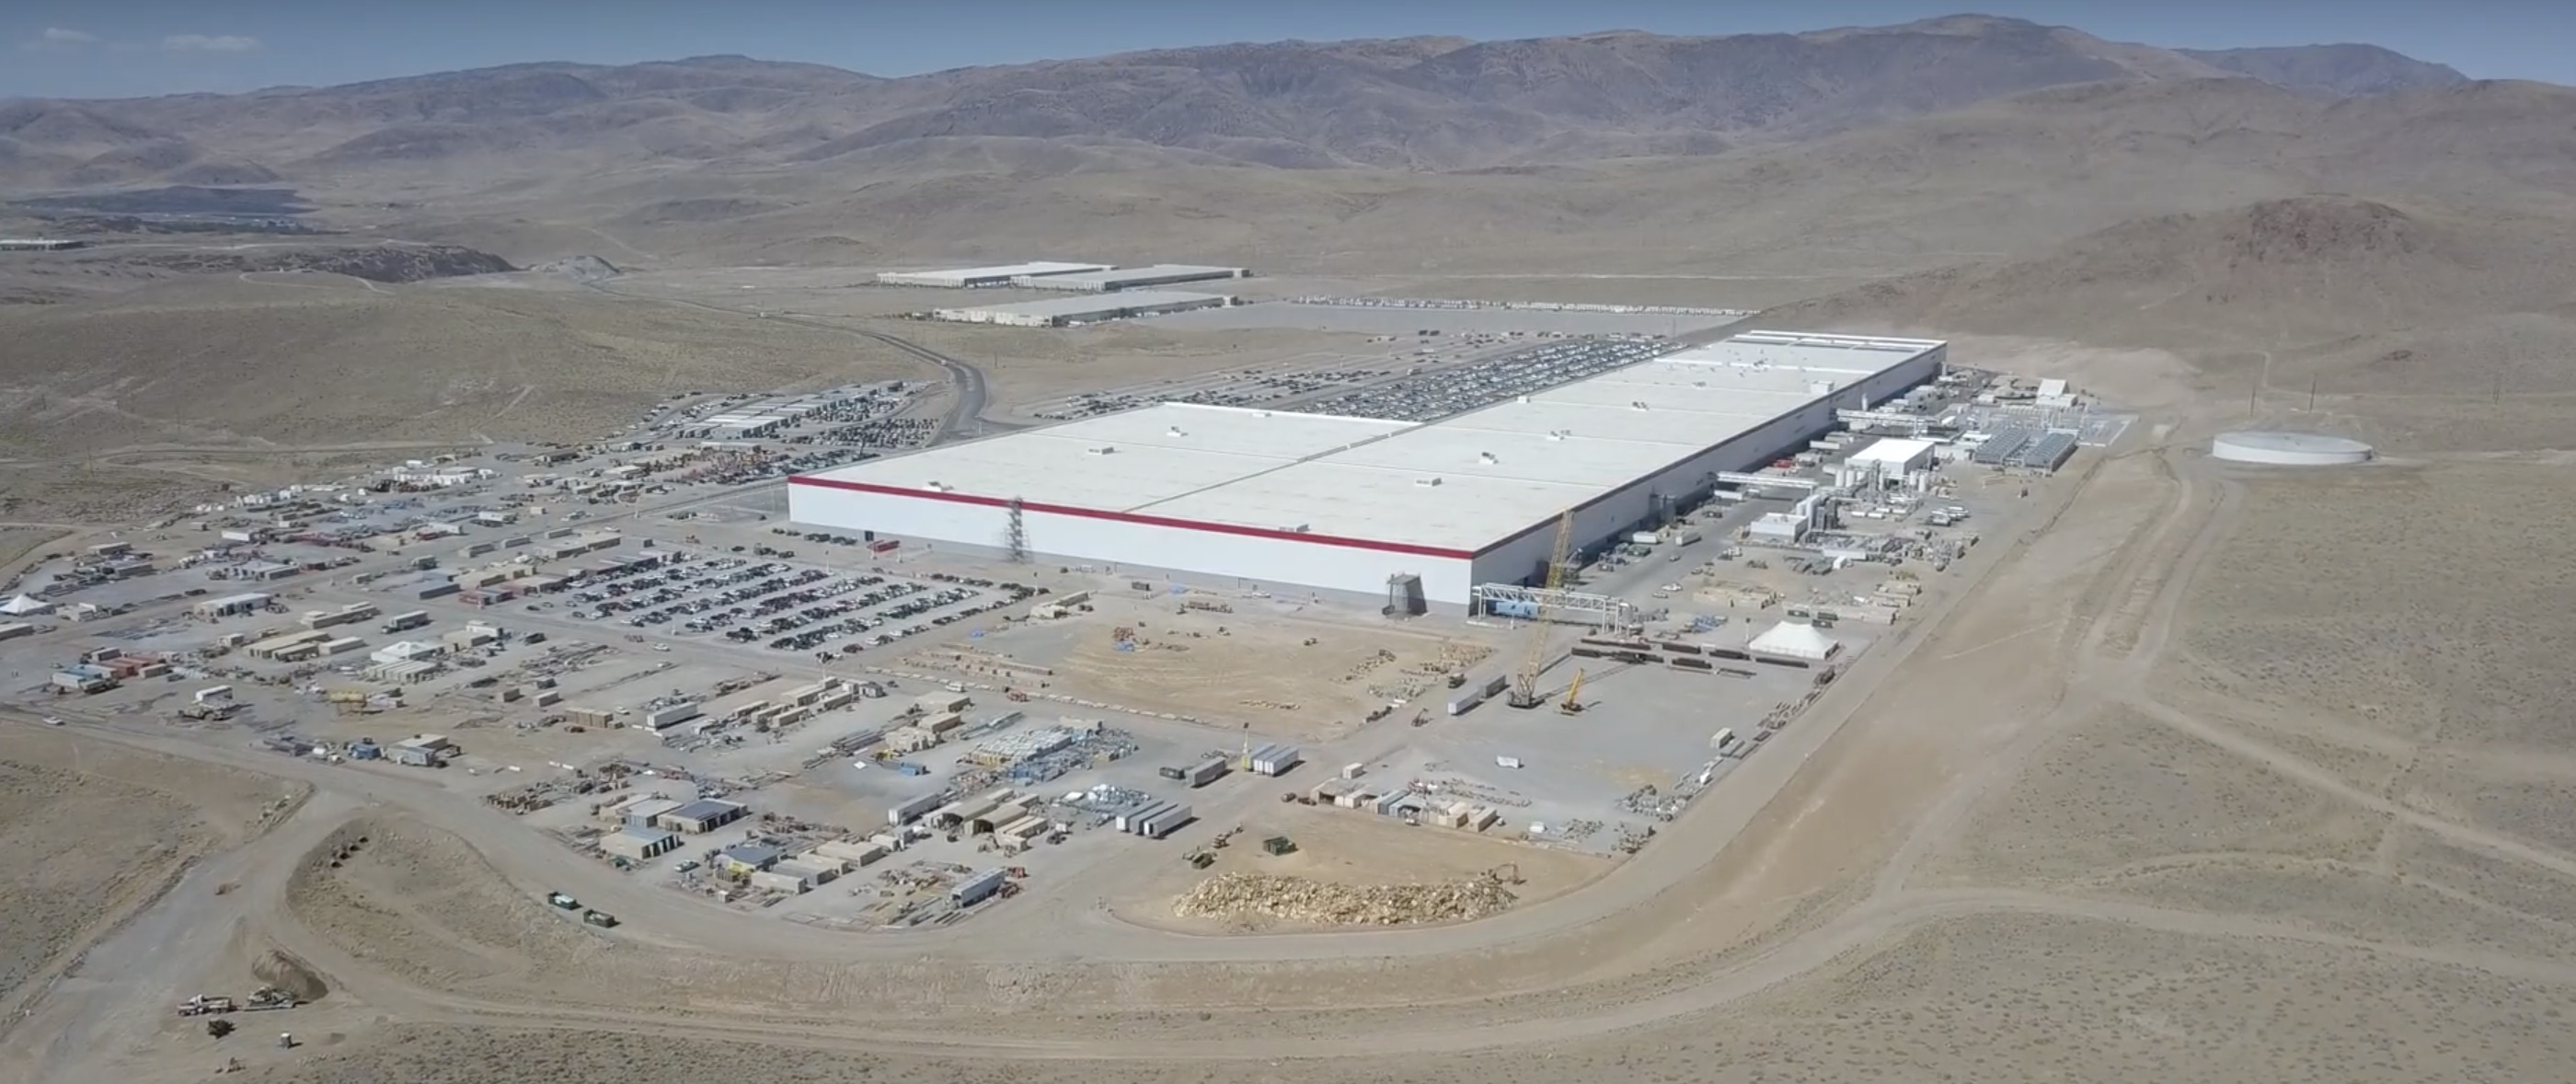 Tesla is setting up casting lines in Gigafactory 1 ahead of Model Y production